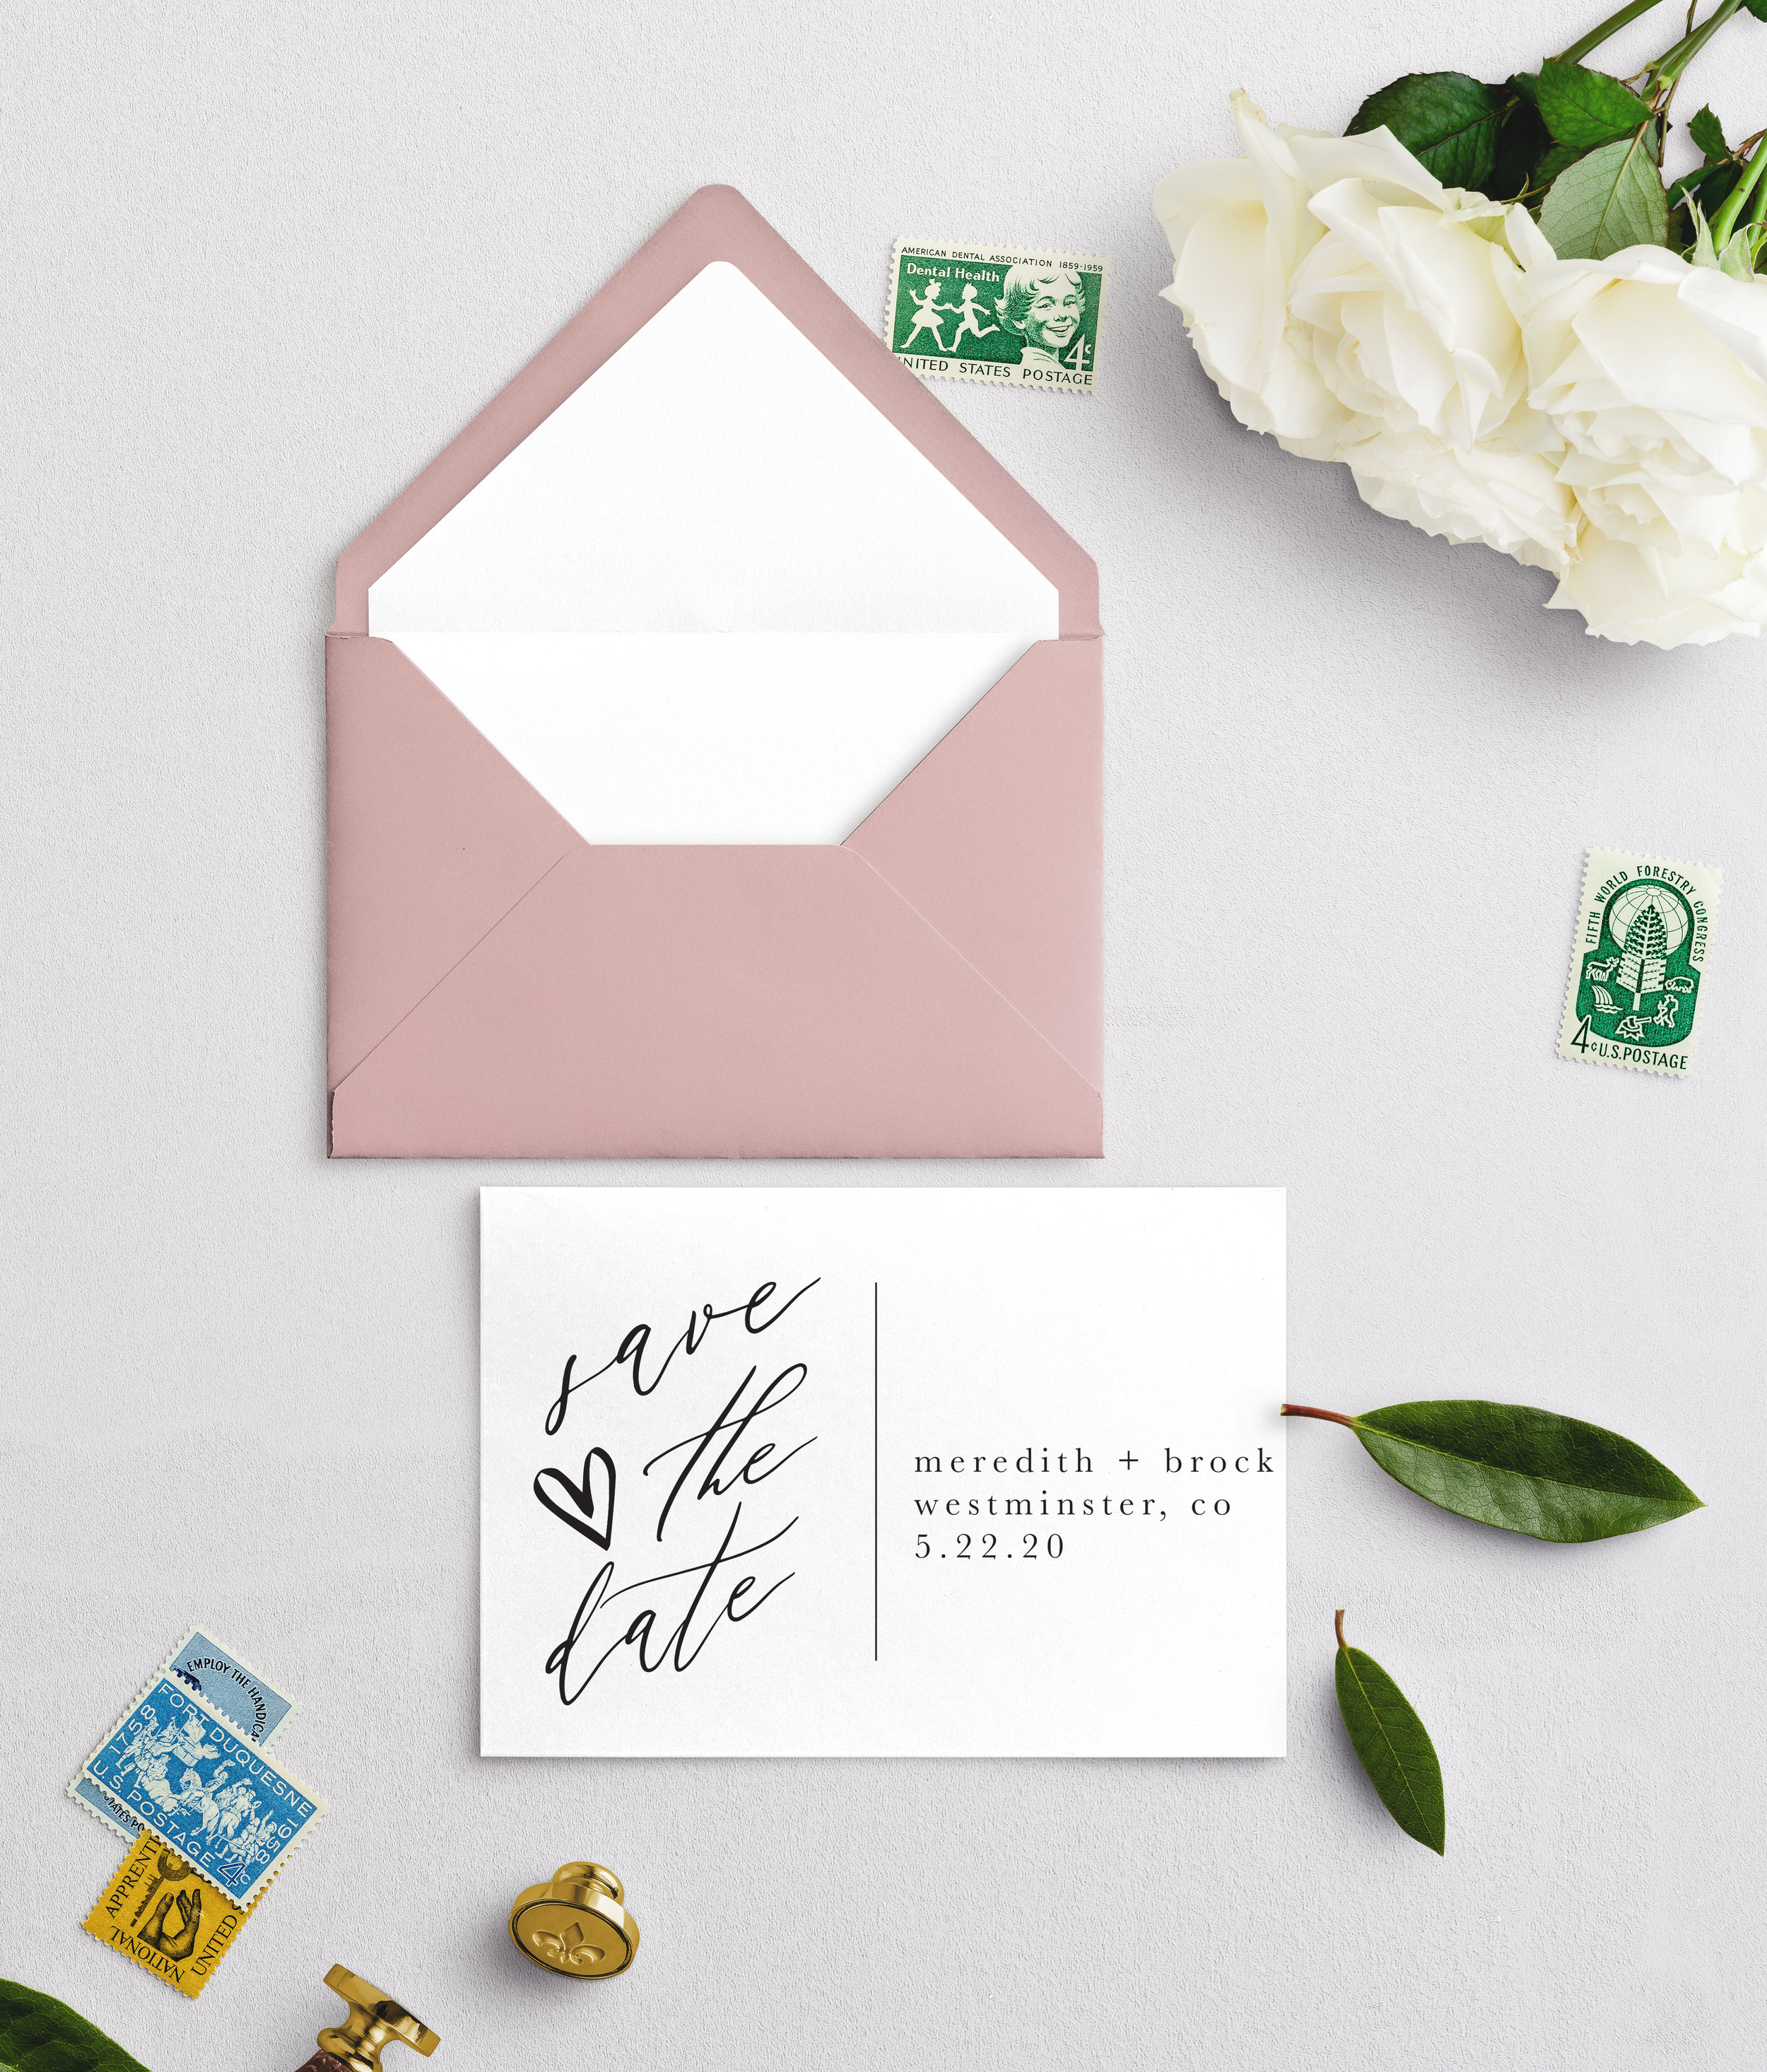 Dusty Rose inspired, while still simple and blissful.  QTY: 100, 118# cardstock white  Envelope color: Dusty Rose